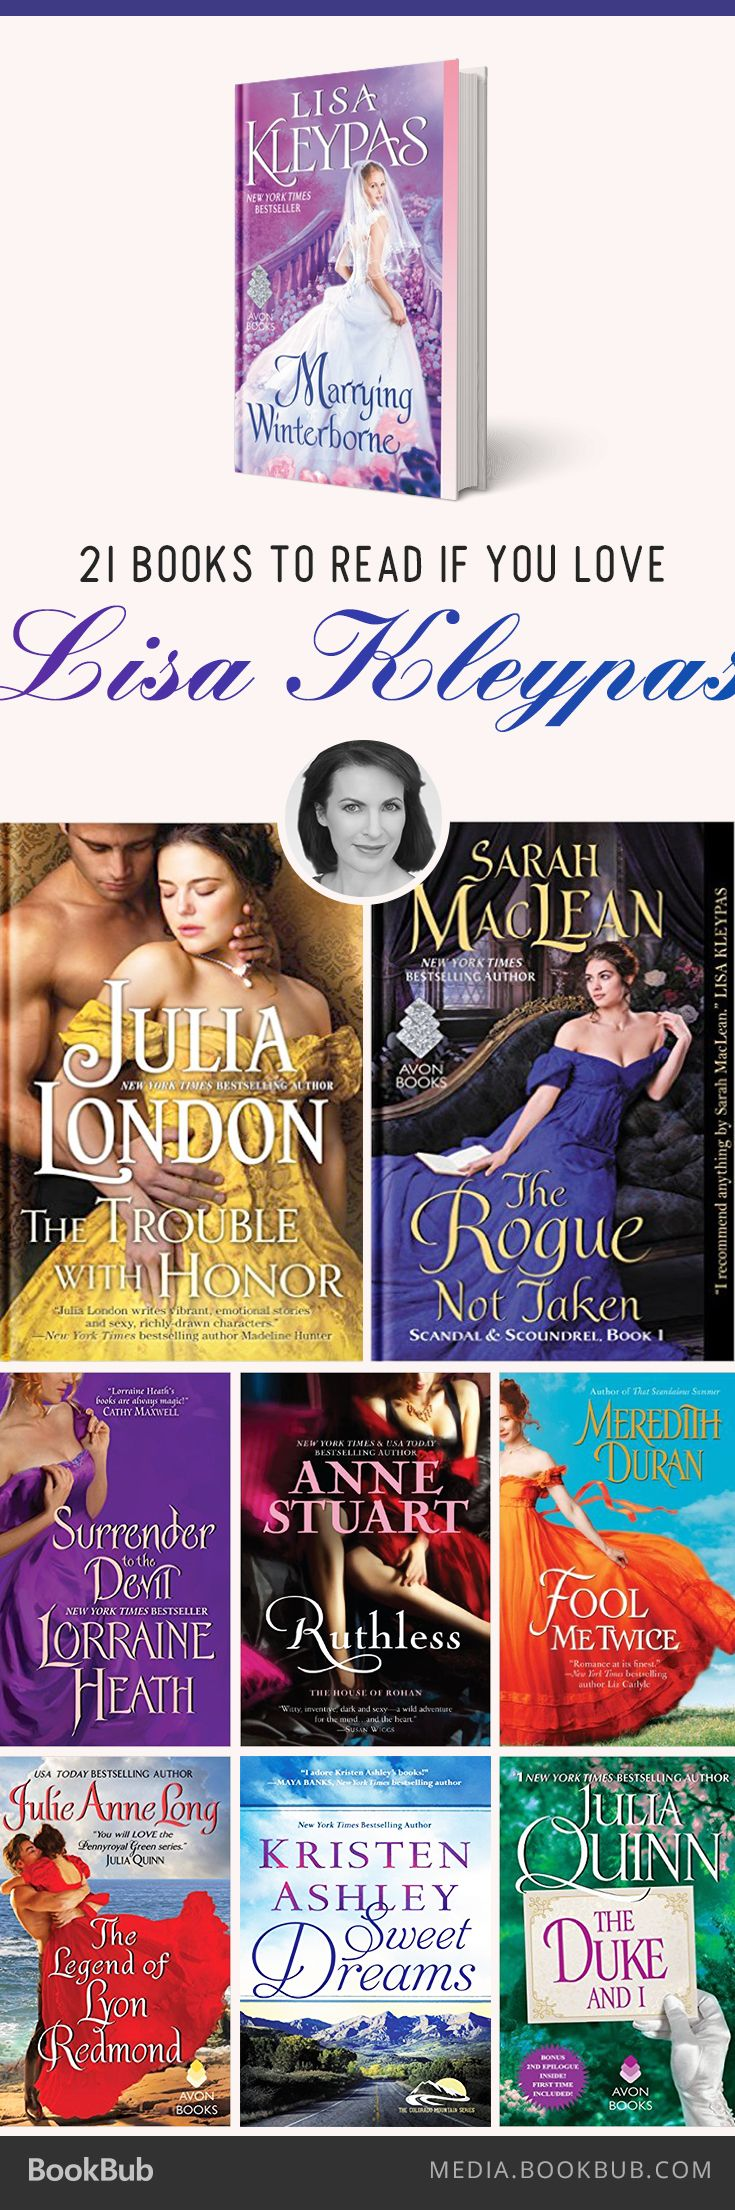 21 books to read if you love Lisa Kleypas, including historical and contemporary romances.